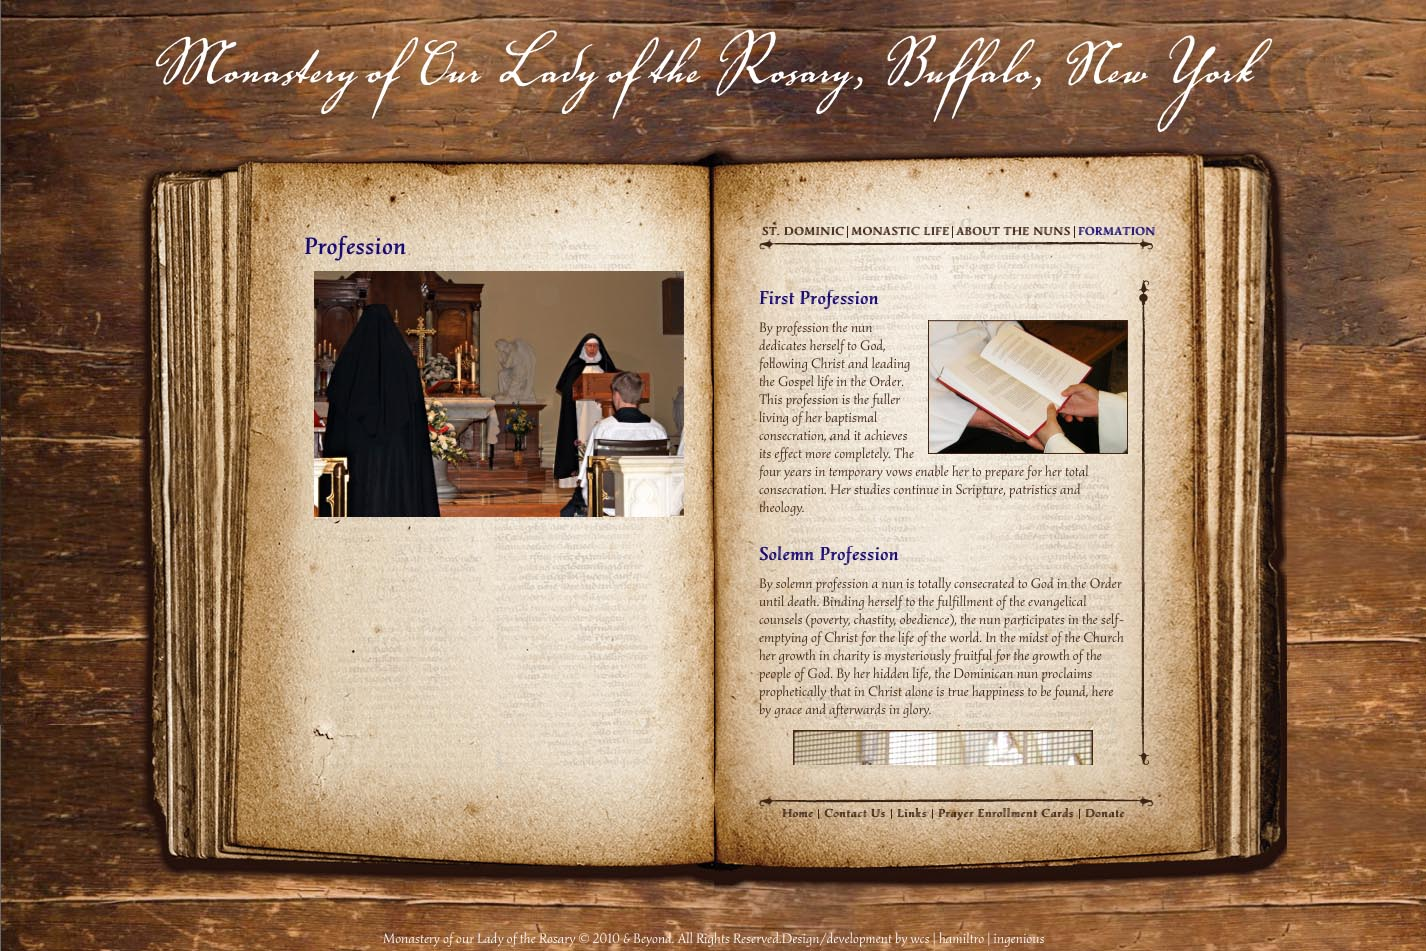 web design for a monastery - profession page